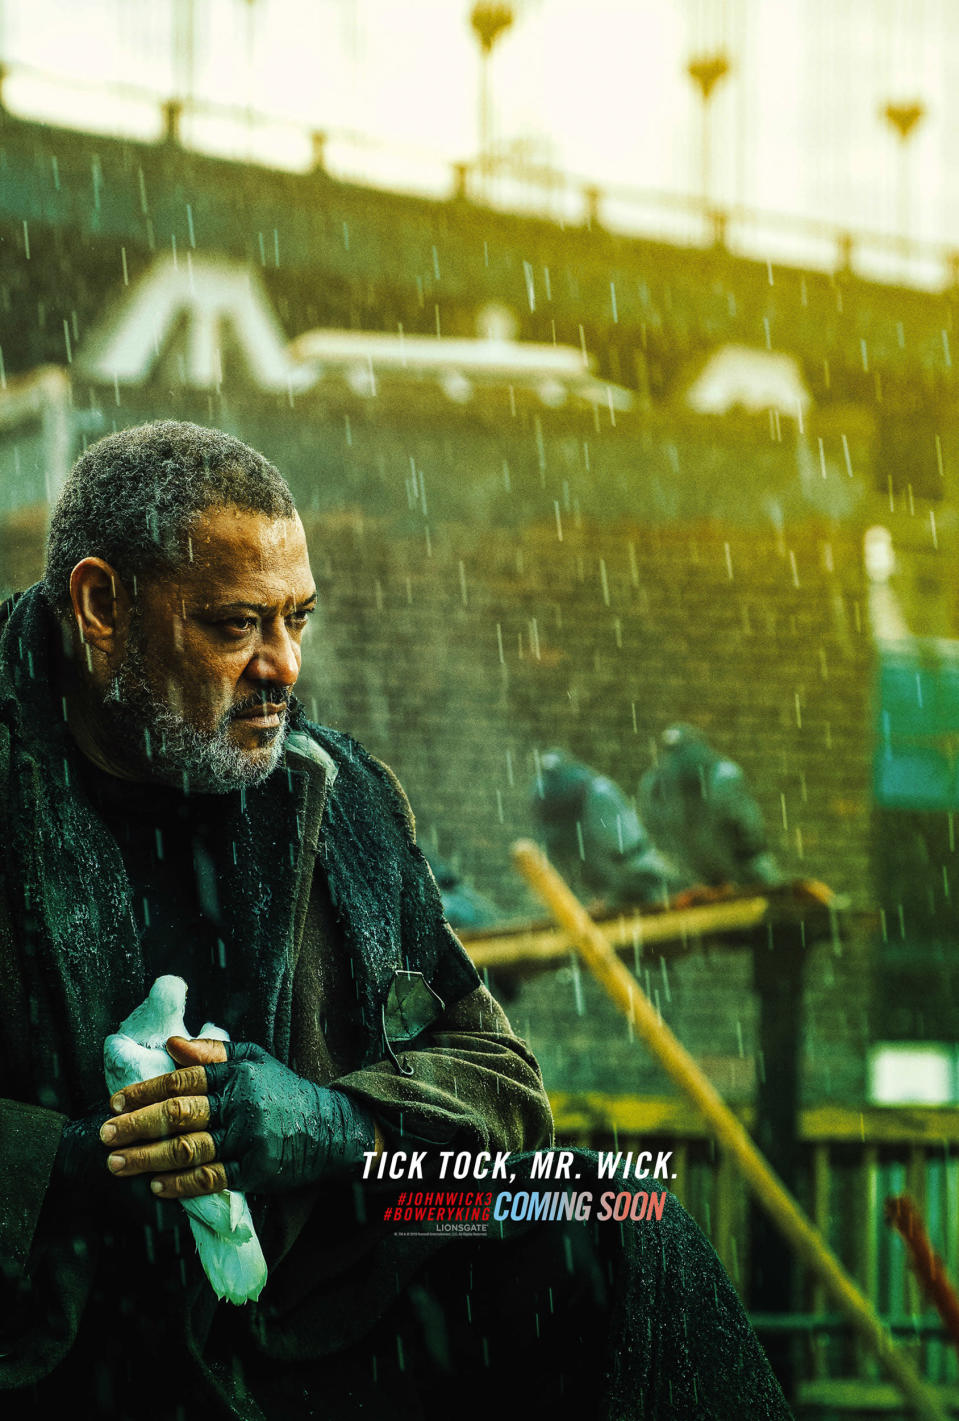 <p>John Wick's mate returns, which means we'll get some more of the Reeves / Fishburne chemistry we so loved in the Matrix movies. </p>